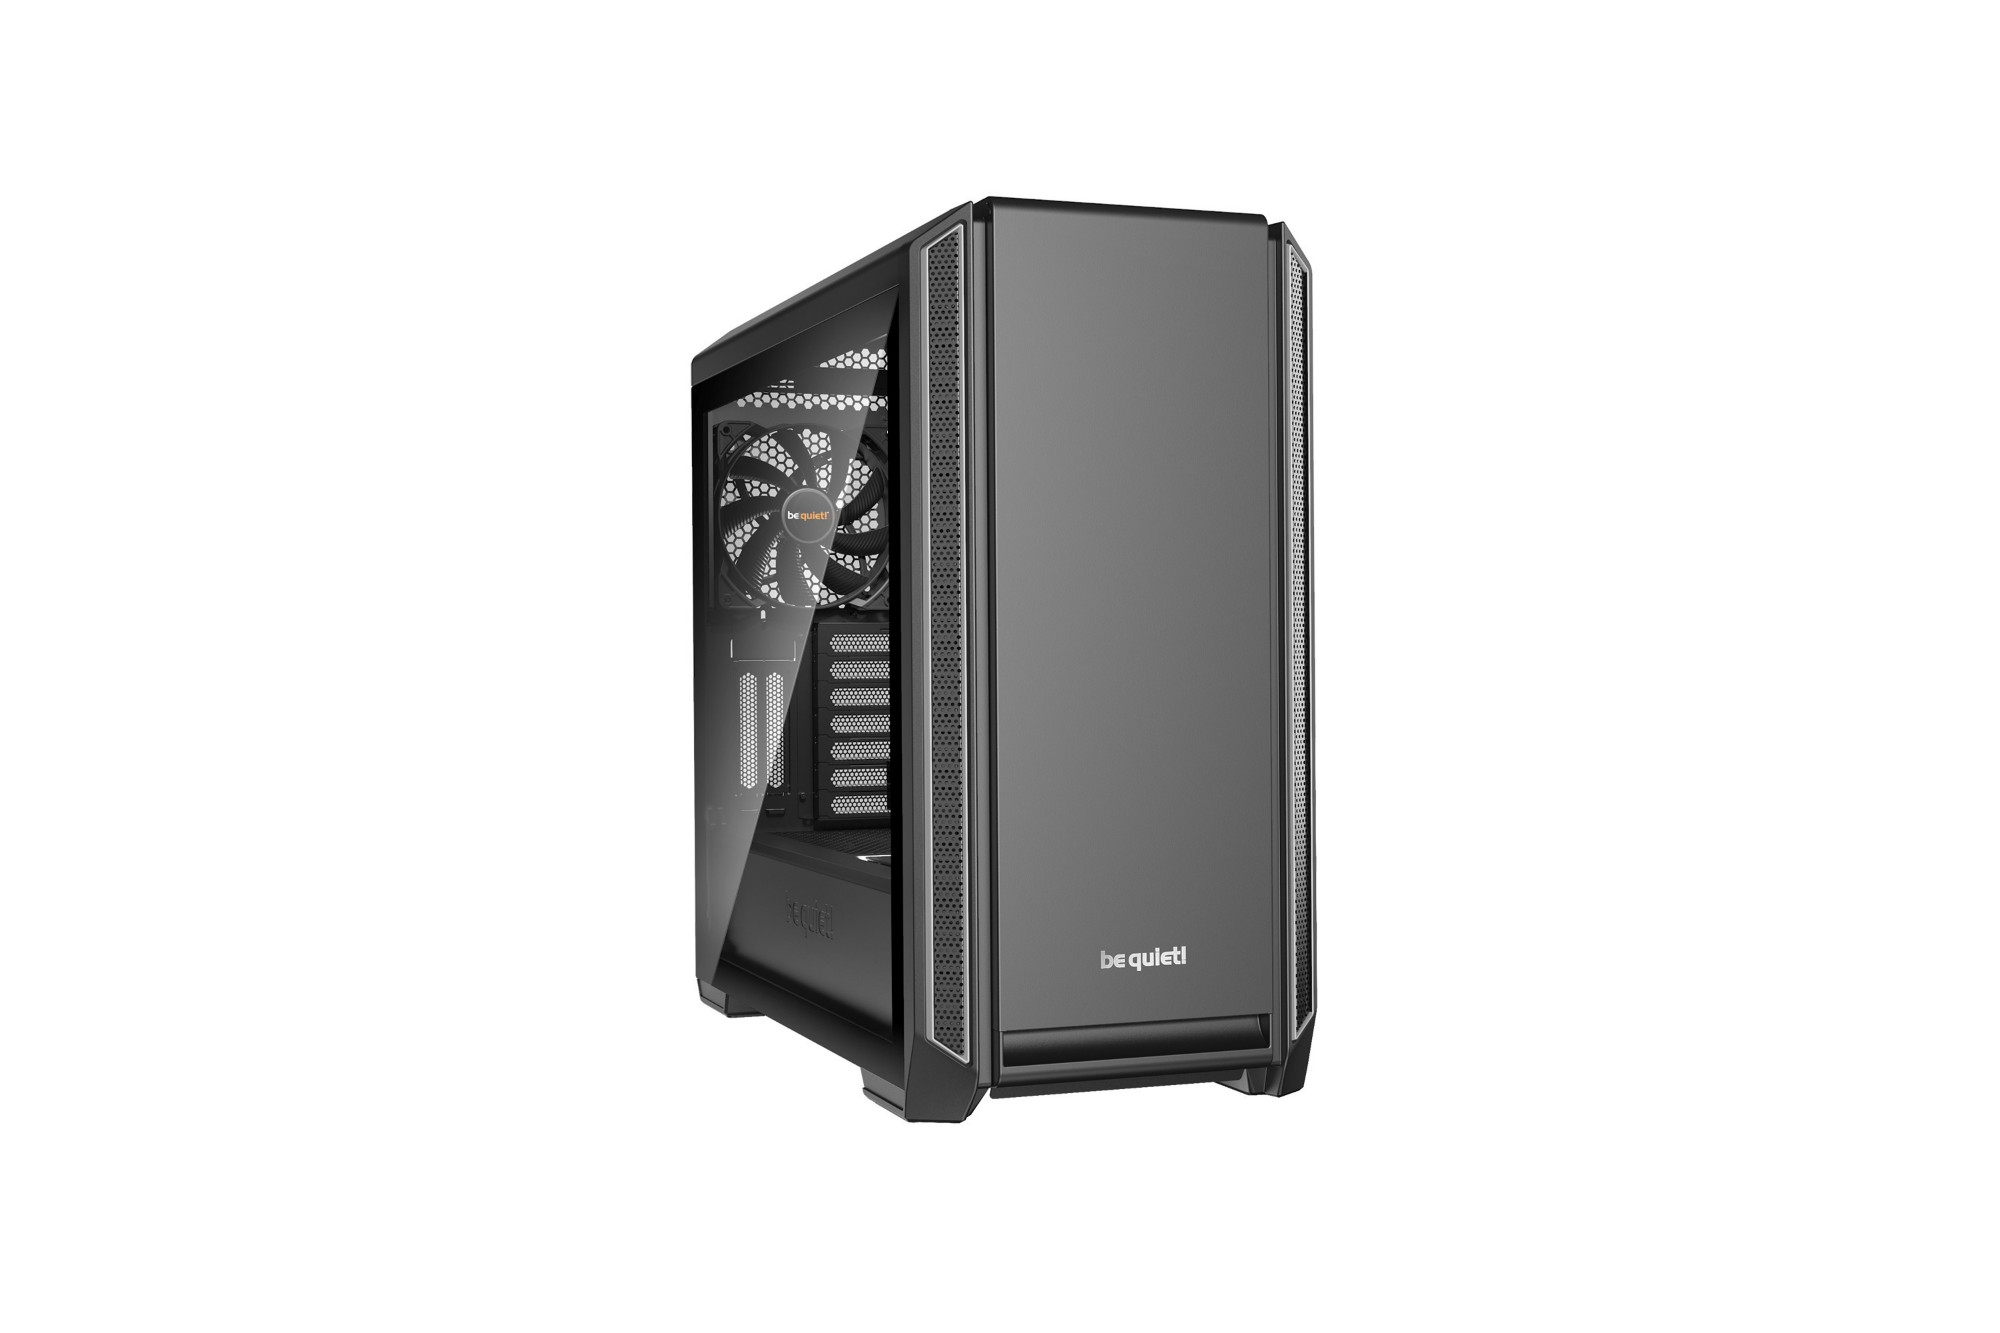 BE QUIET! BGW27 SILENT BASE 601 WINDOW COMPUTER CASE MIDI-TOWER BLACK, SILVER